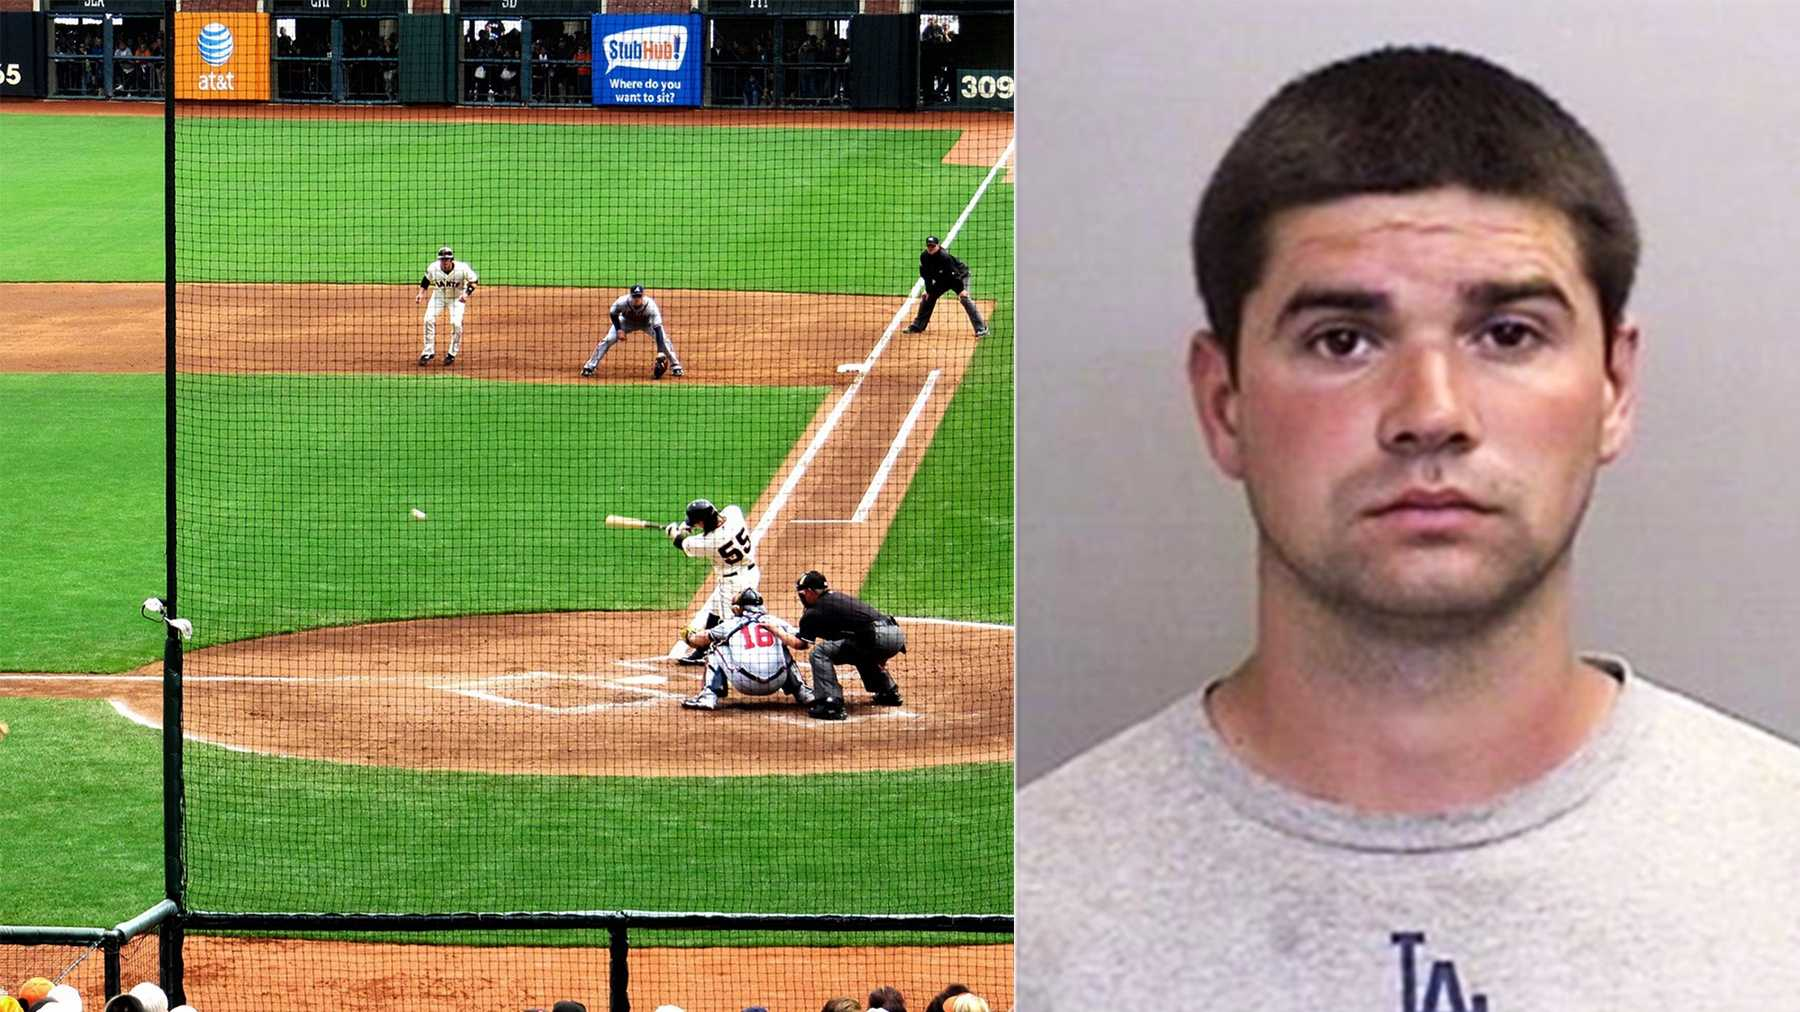 Jonathan Denver was slain after Wednesday night's Giants vs. Dodgers game in San Francisco.